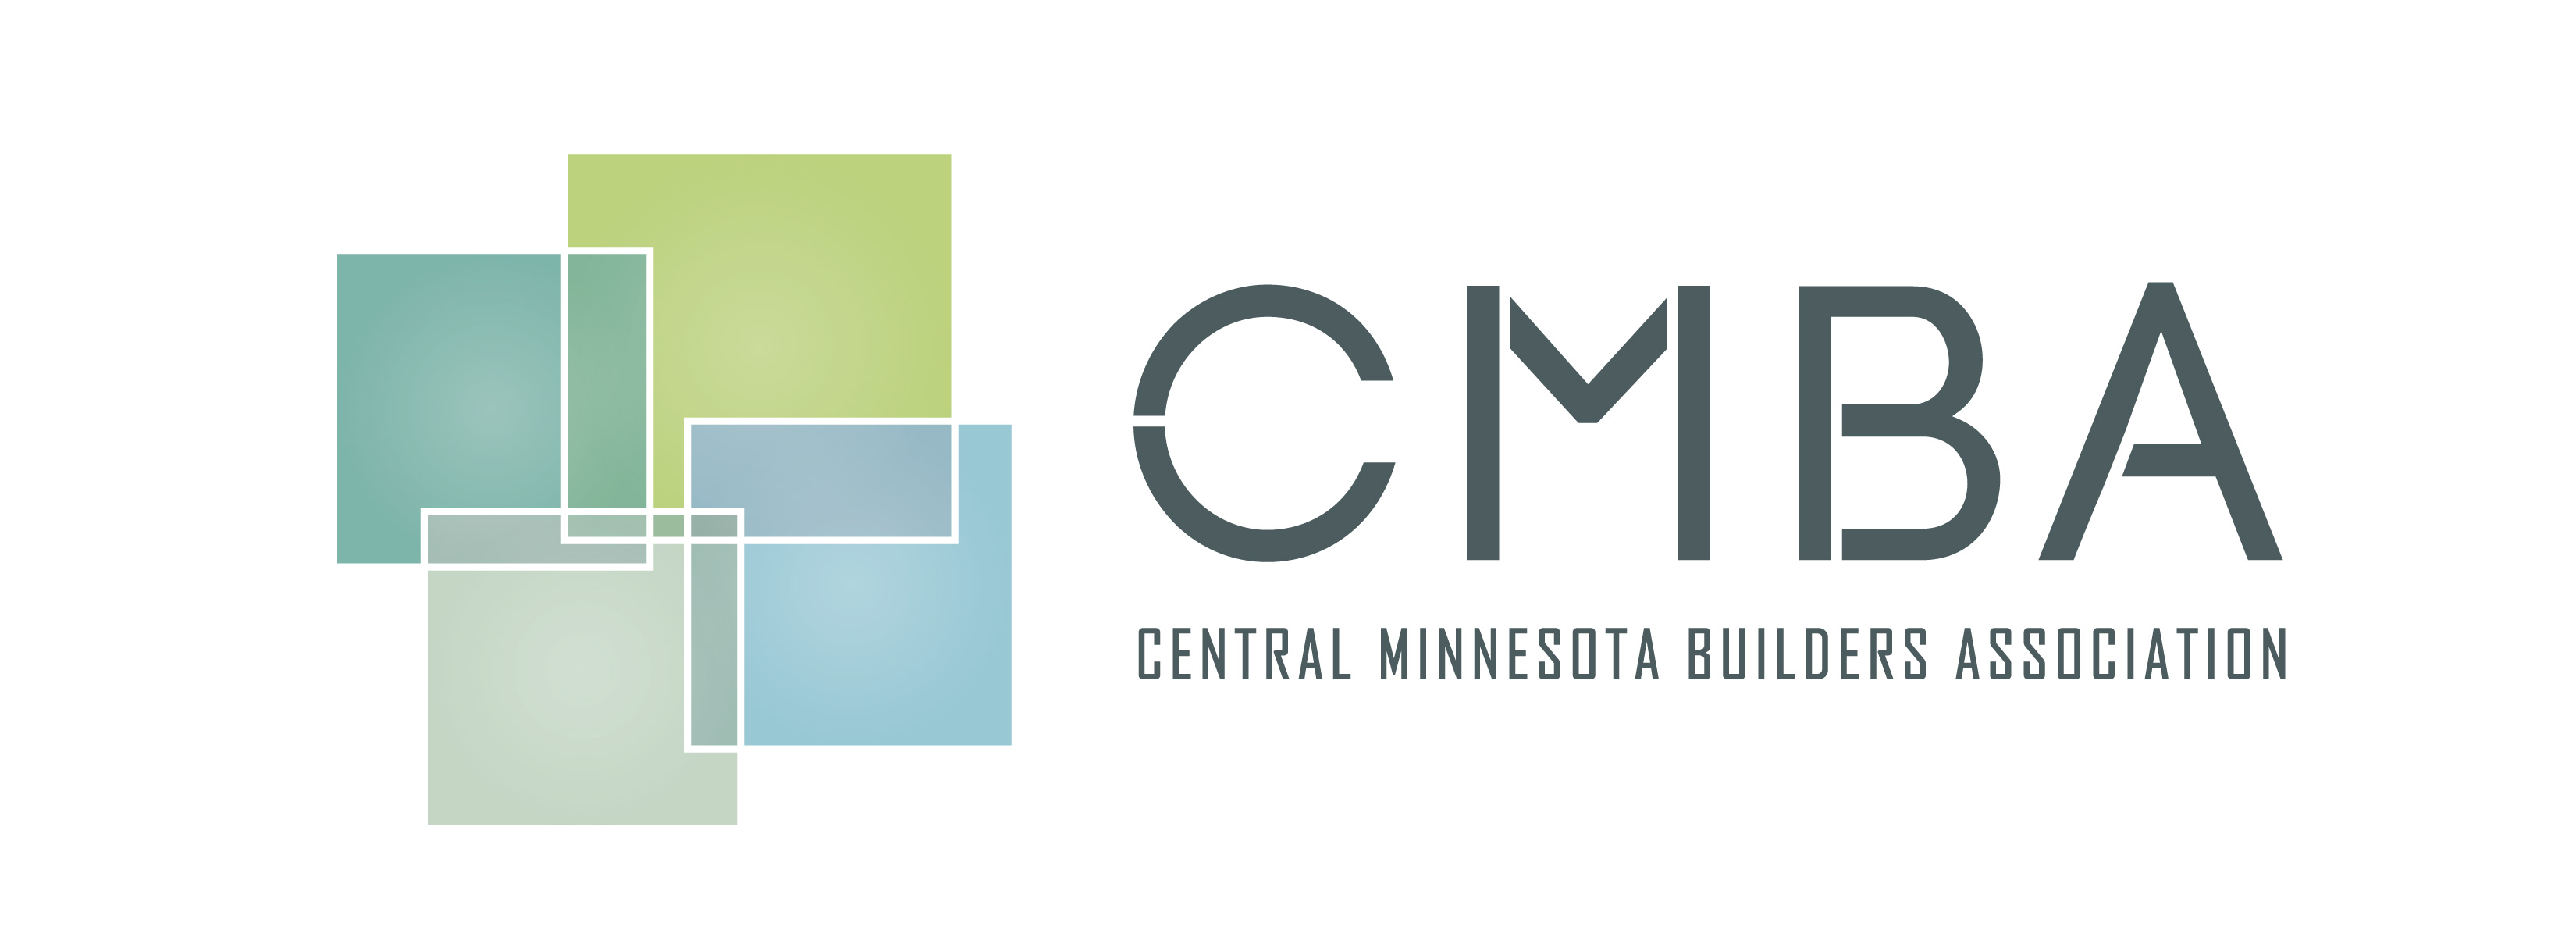 Central Minnesota Builders Association